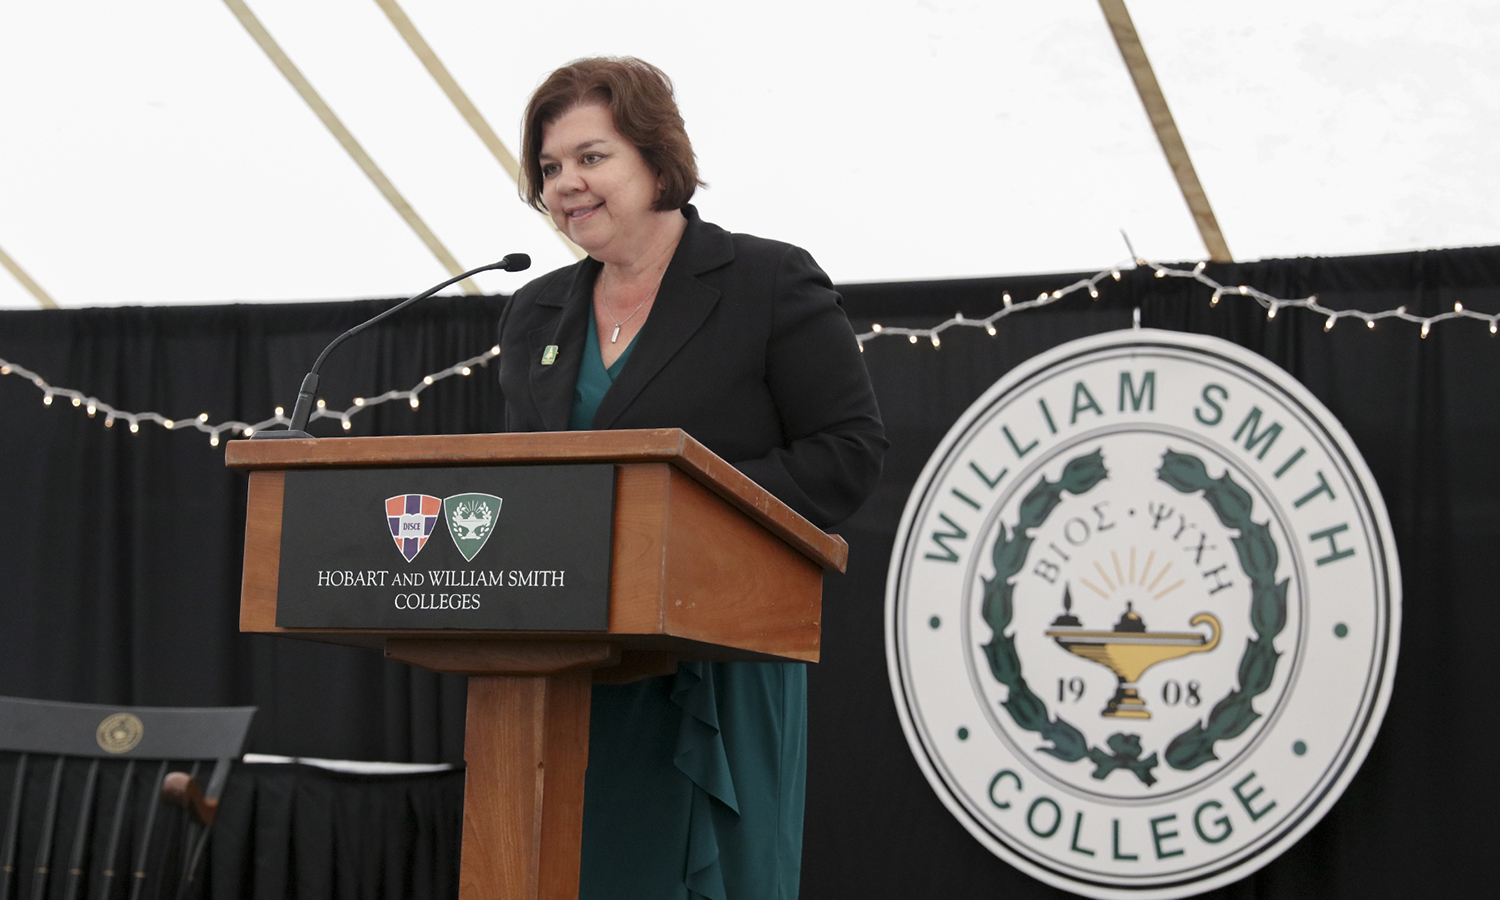 William Smith Dean Lisa Kaenzig addresses the audience during the traditional Moving Up Day ceremony held on Stern Lawn.